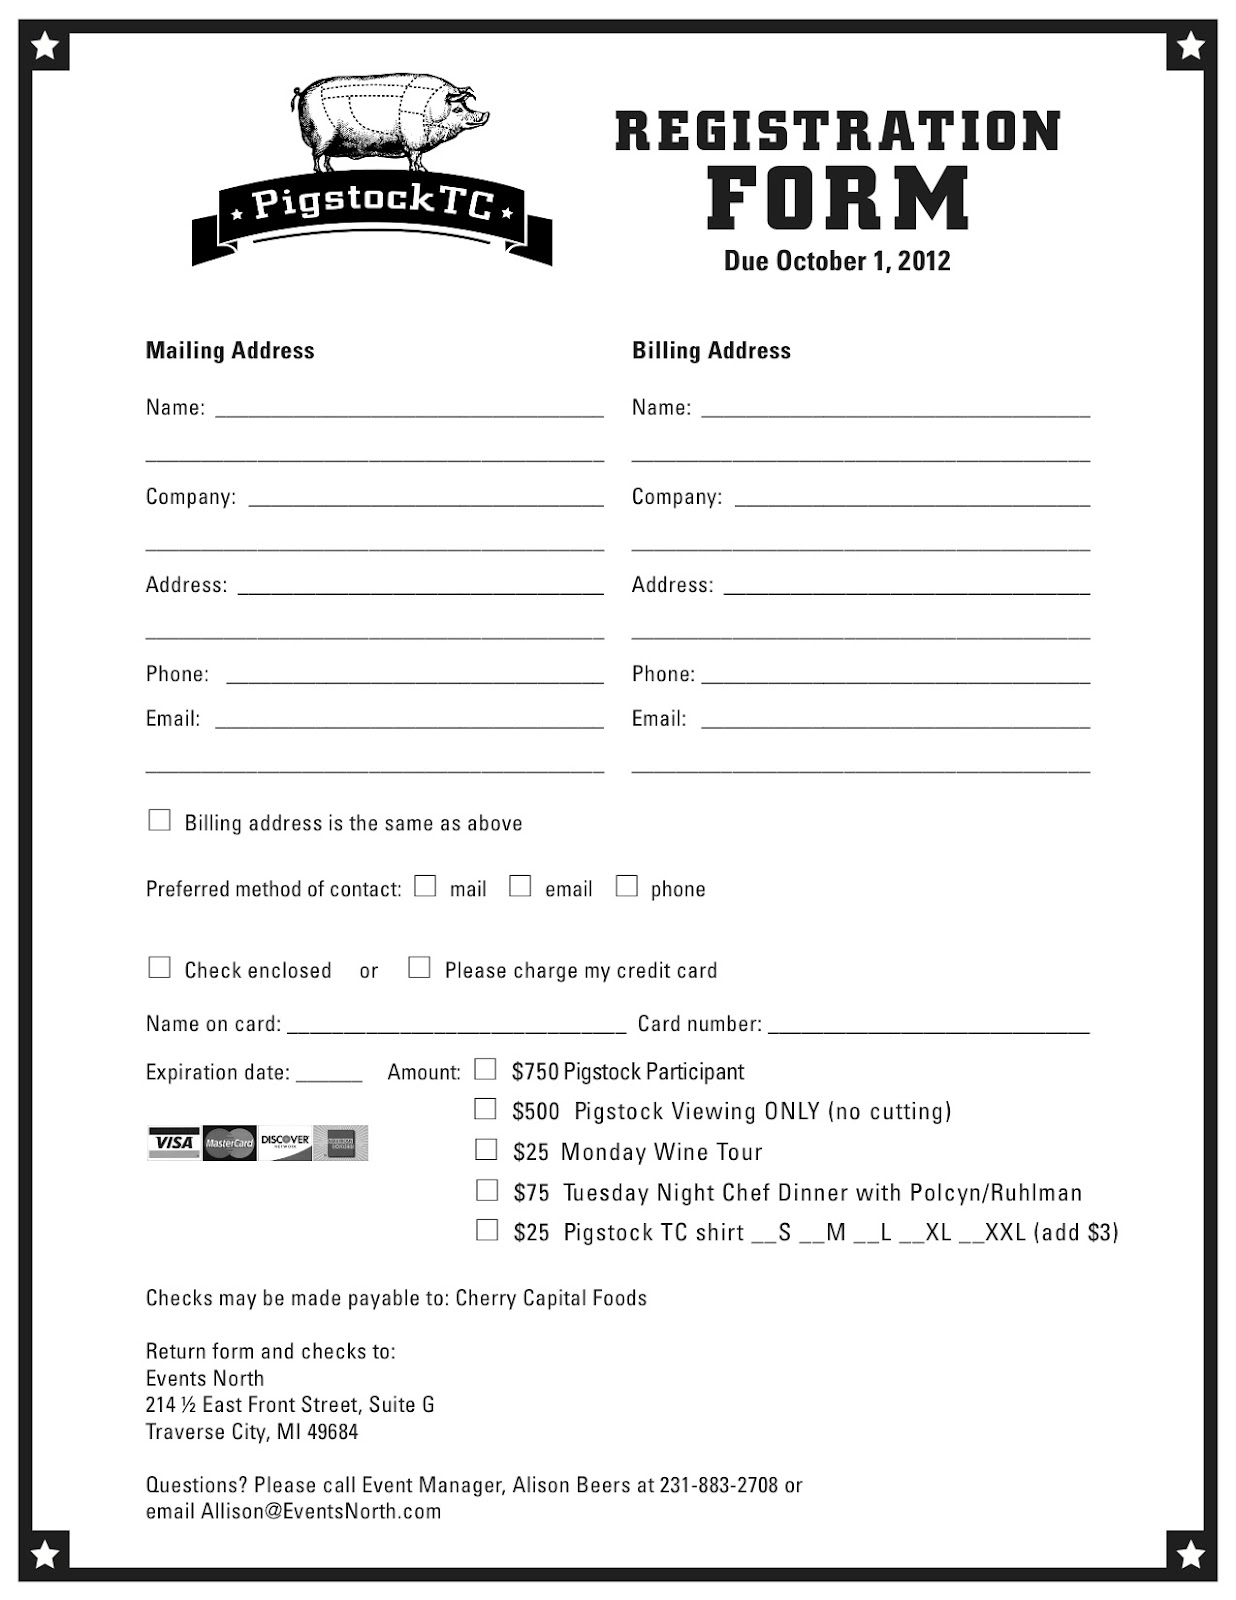 Free registration form templates charlotte clergy coalition free registration form template registration form template 9 free altavistaventures Image collections